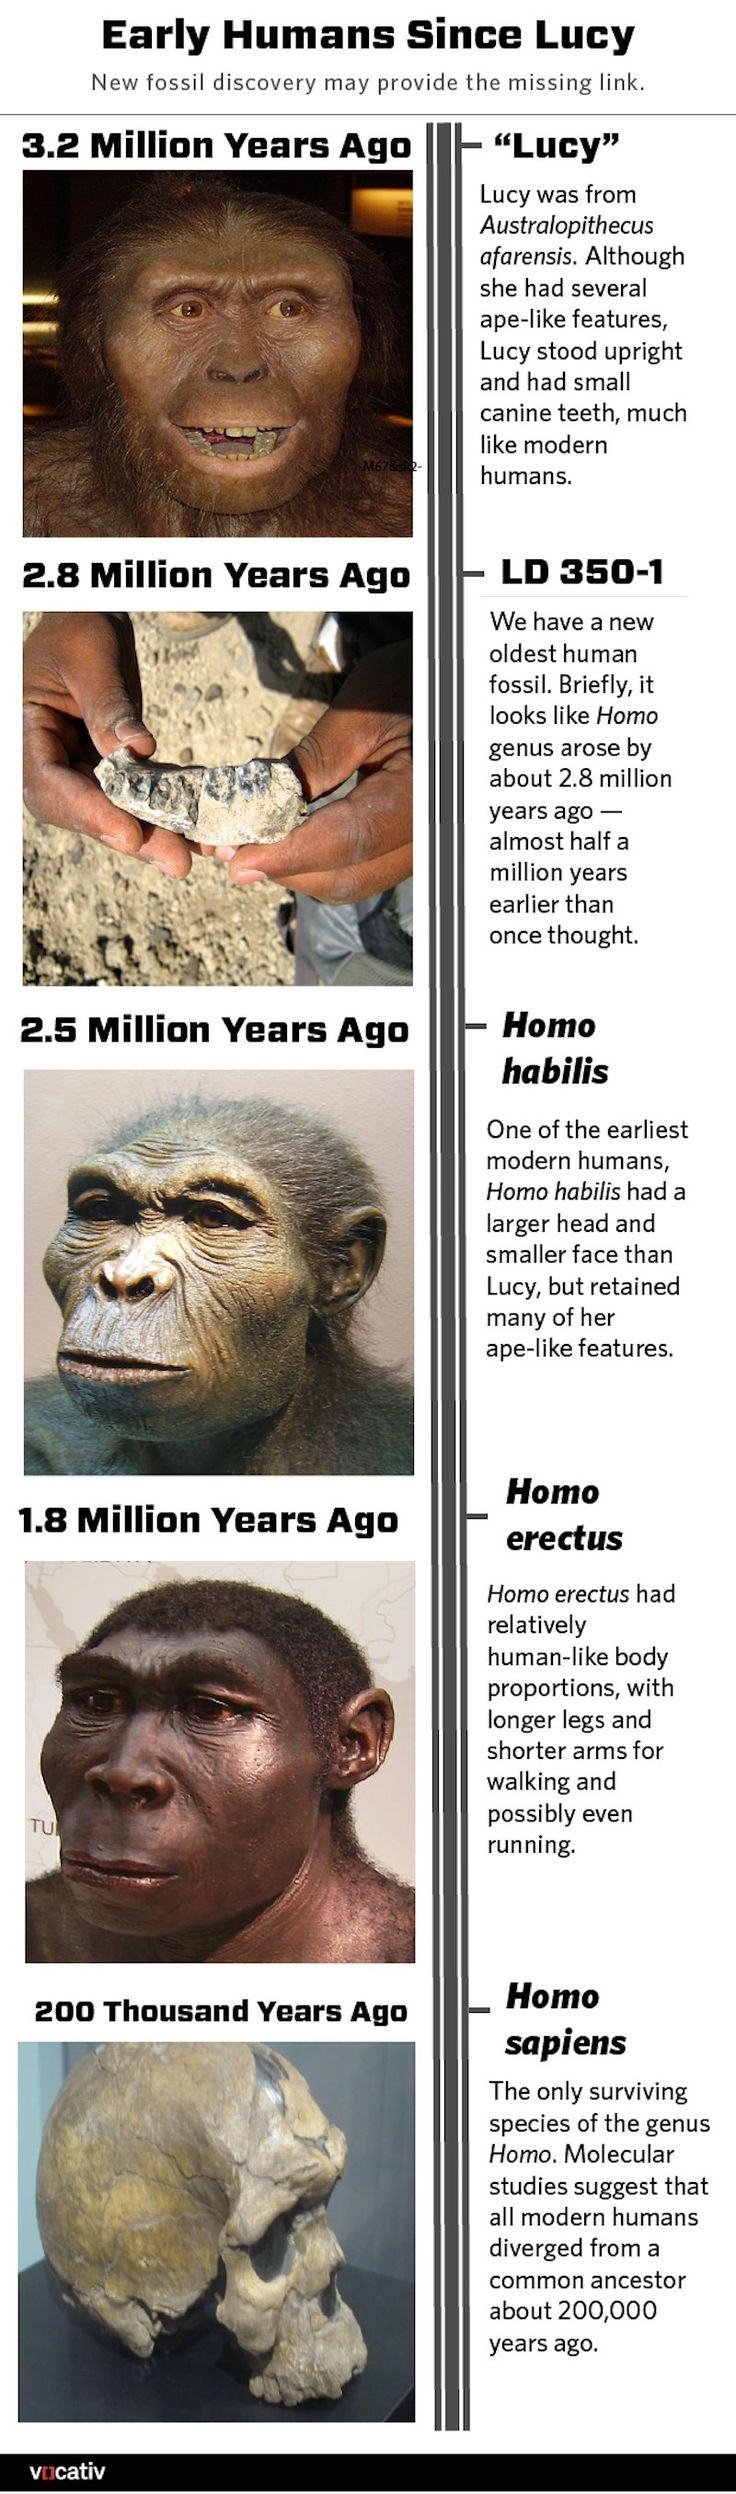 a description of how man evolved the human evolution Fossil links have also been found to support human evolution in early 2018, a fossilized jaw and teeth found that are estimated to be up to 194,000 years old, making them at least 50,000 years older than modern human fossils previously found outside africa this finding provides another clue to how humans have evolved.